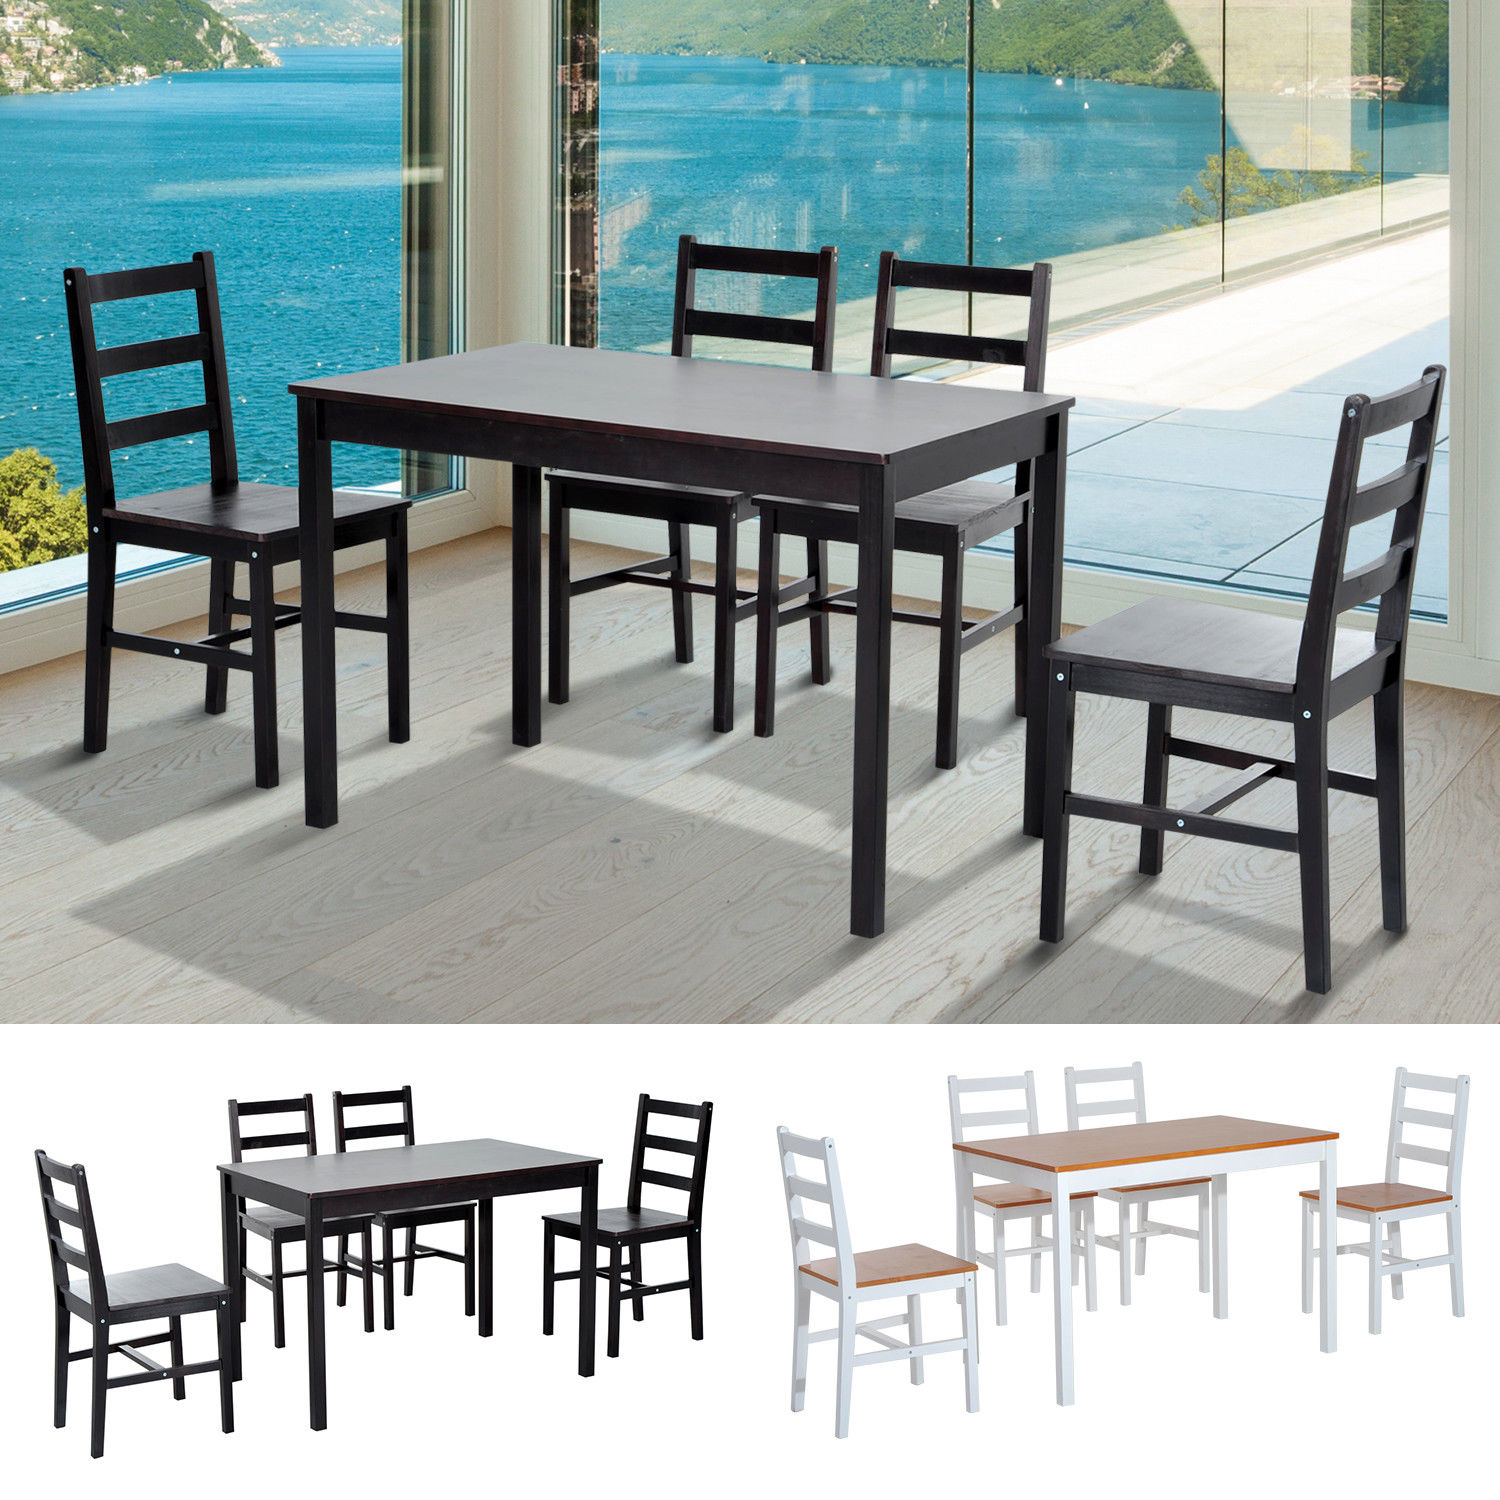 Breakfast Chairs Details About 5pc Dining Table Chairs Set Solid Wood Kitchen Breakfast Dinette Furniture